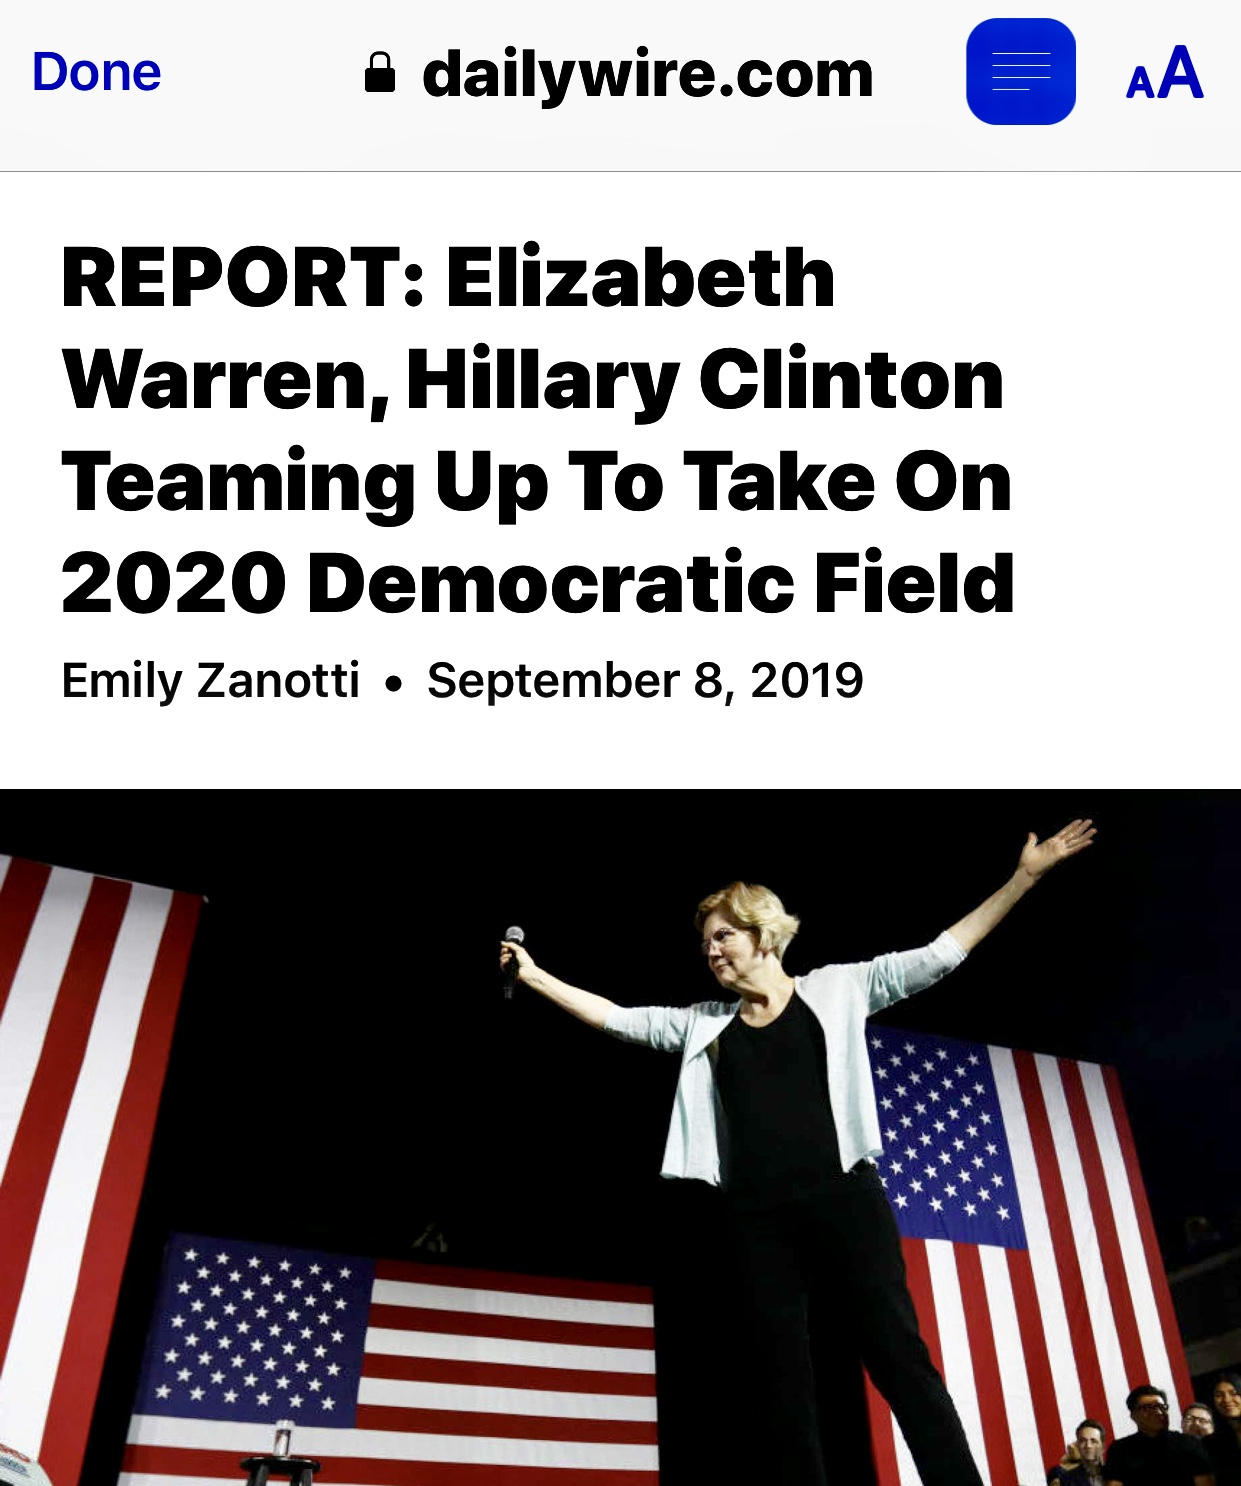 REPORT: Elizabeth Warren, Hillary Clinton Teaming Up To Take On 2020 Democratic Field | Daily Wire